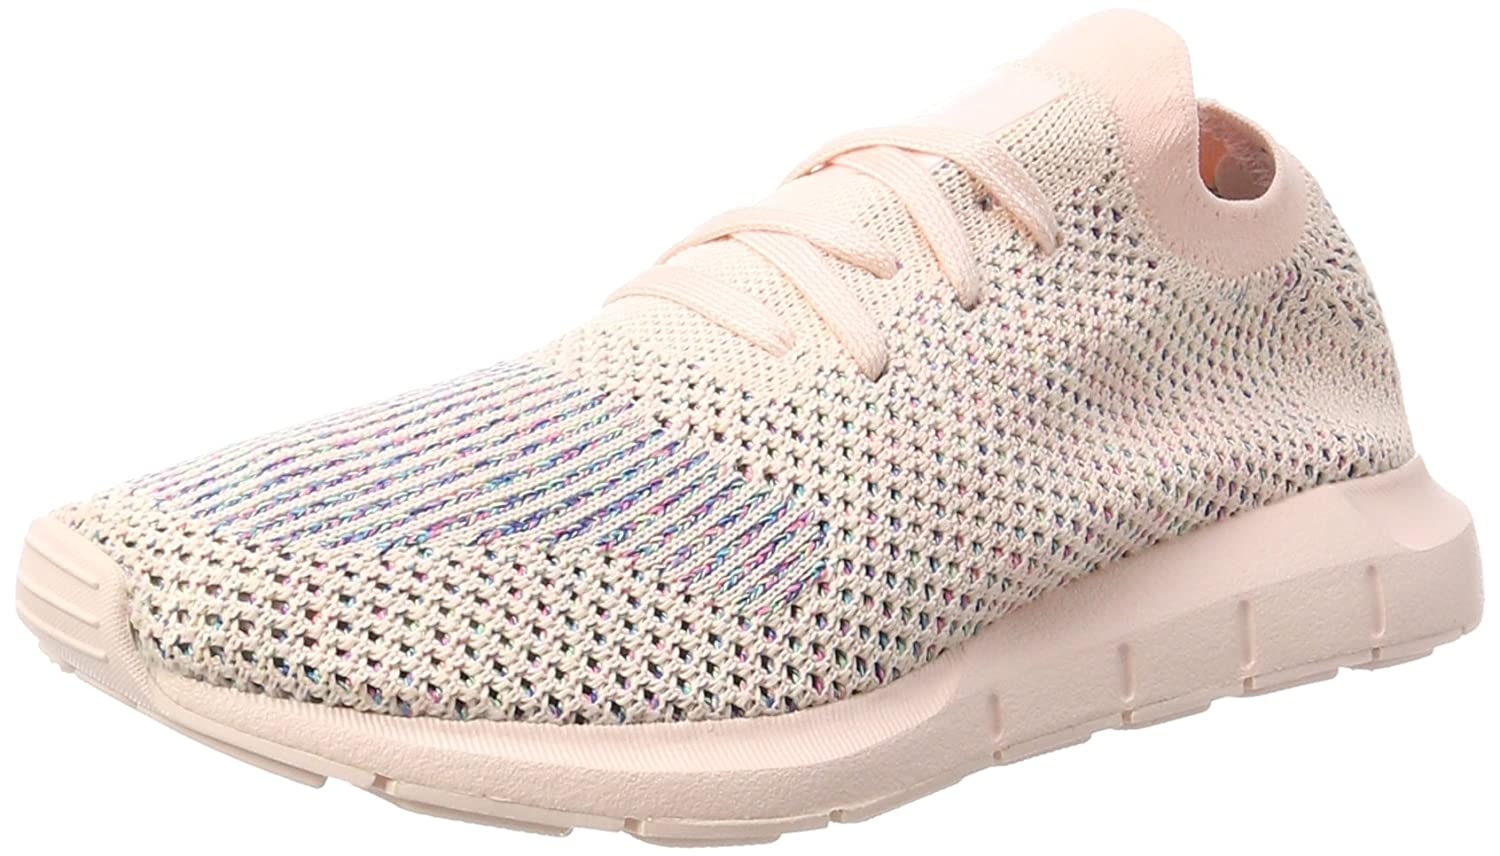 TALLA 36 EU. adidas Swift Run Primeknit - Tobillo bajo Unisex Adulto